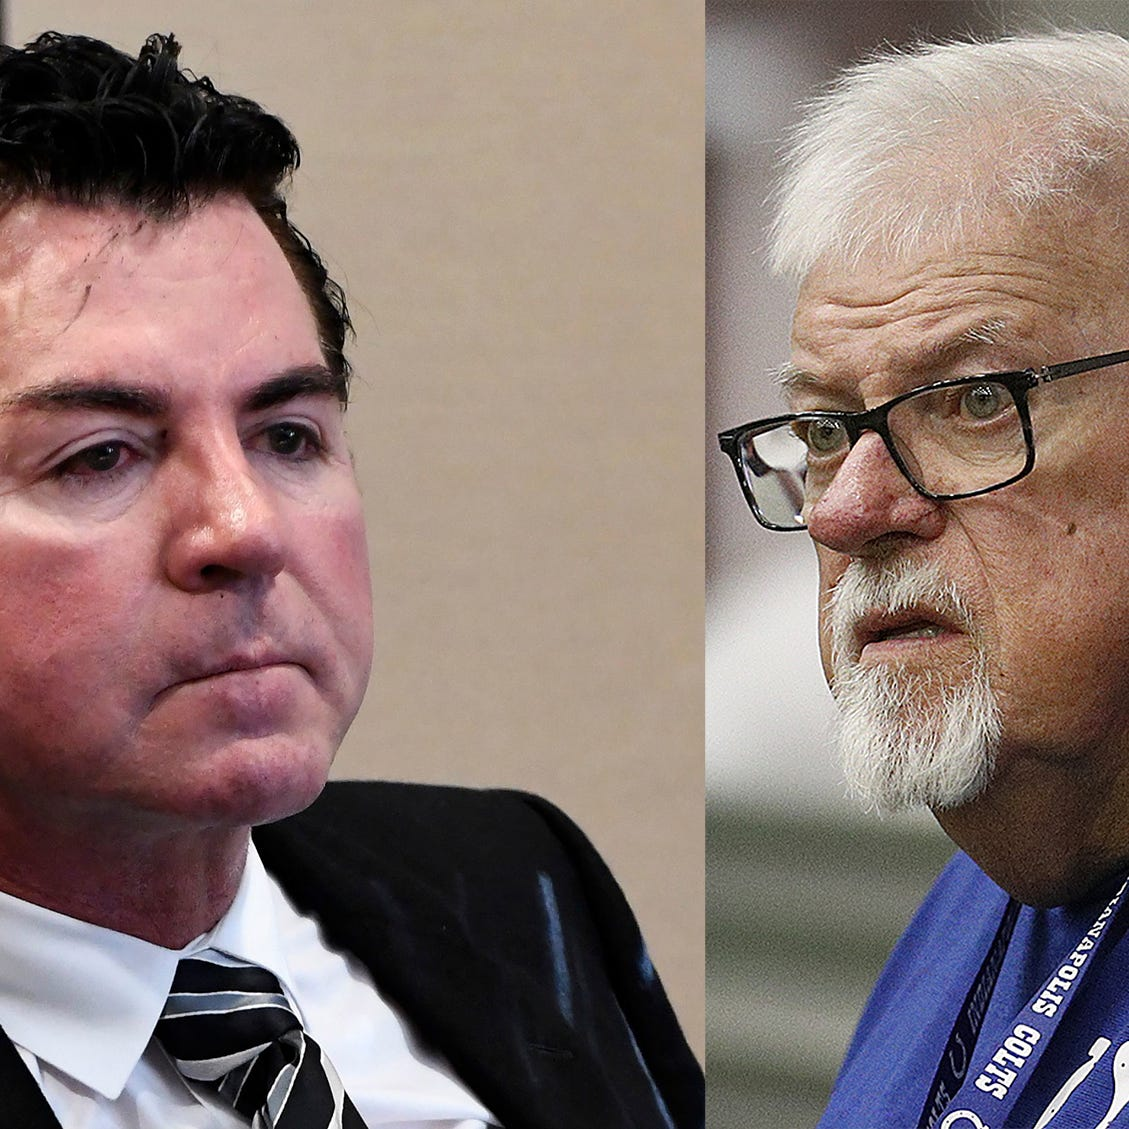 Beyond Bob Lamey and John Schnatter: Why a racial slur with an ugly past continues to divide